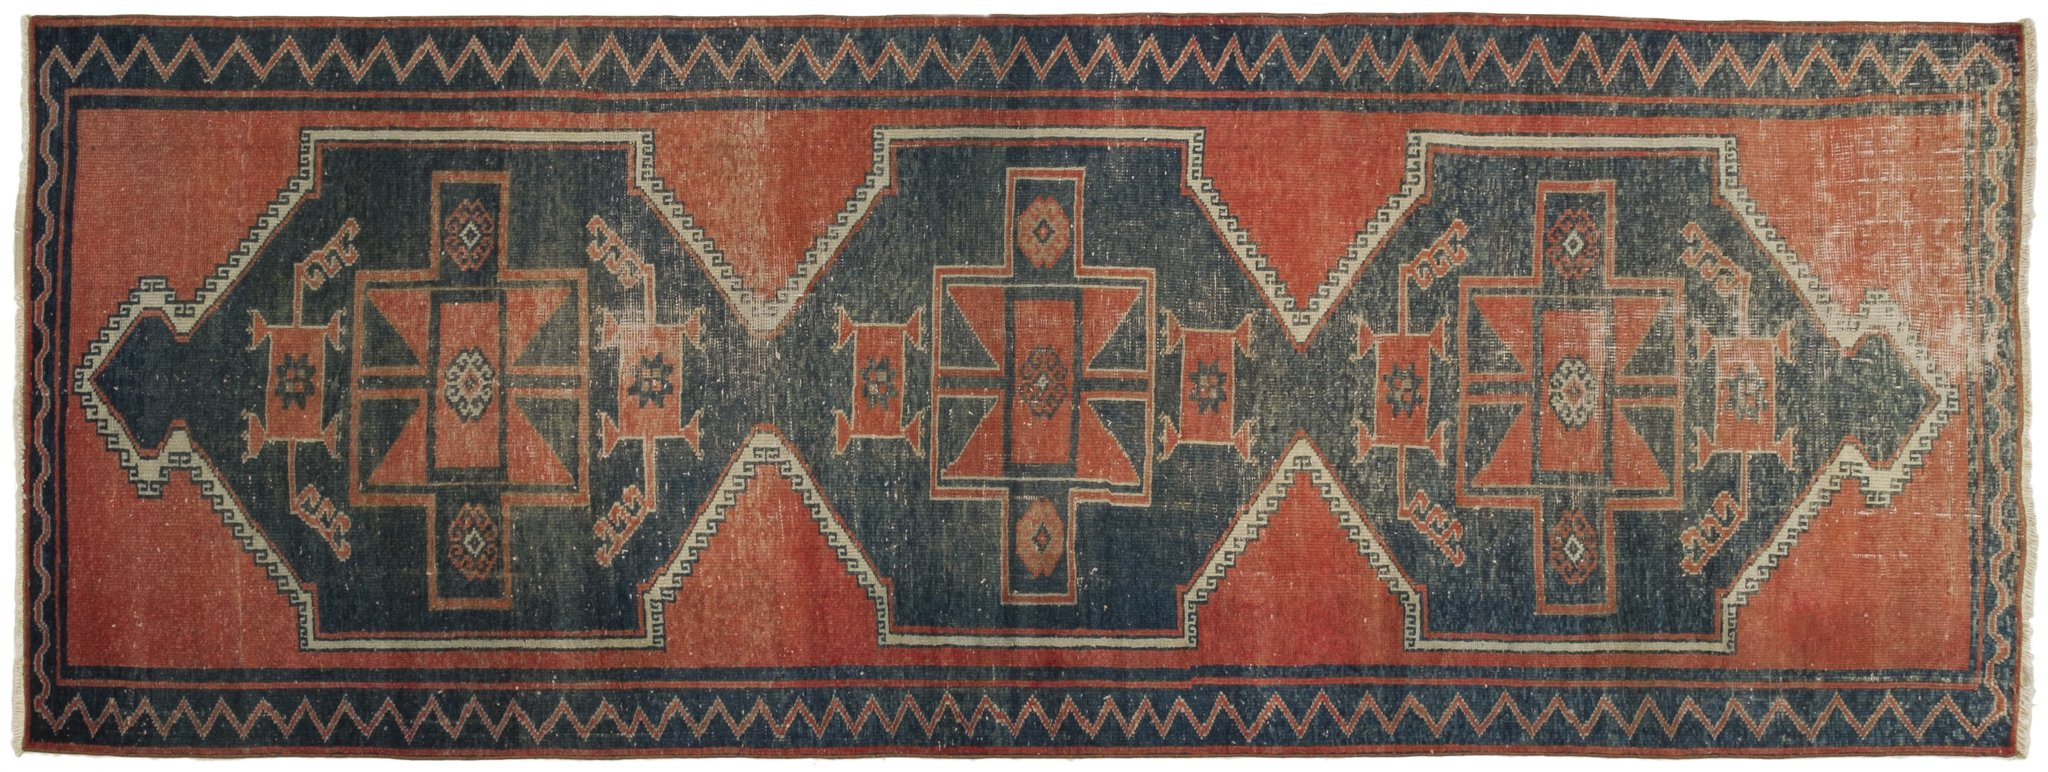 Vintage Turkish Runner Rug Aikaterini